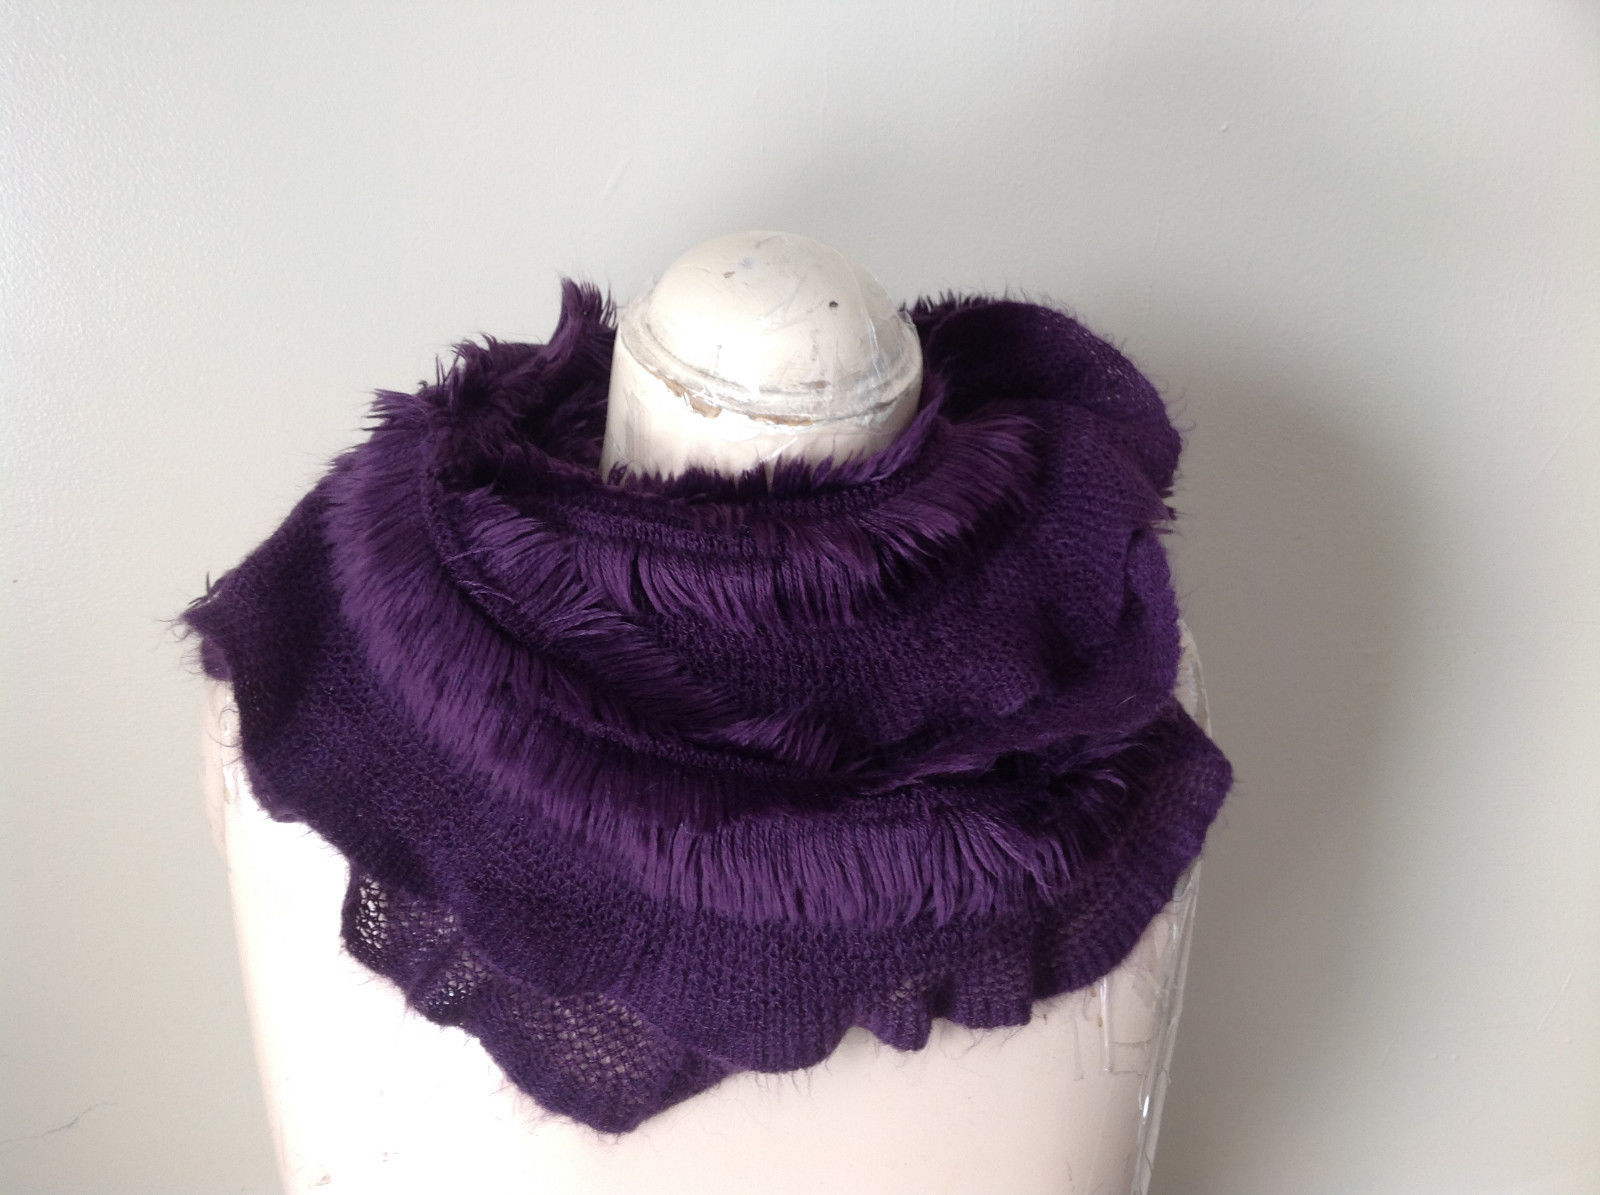 Pretty Frilly Furry Purple Infinity Scarf See Measurements Below